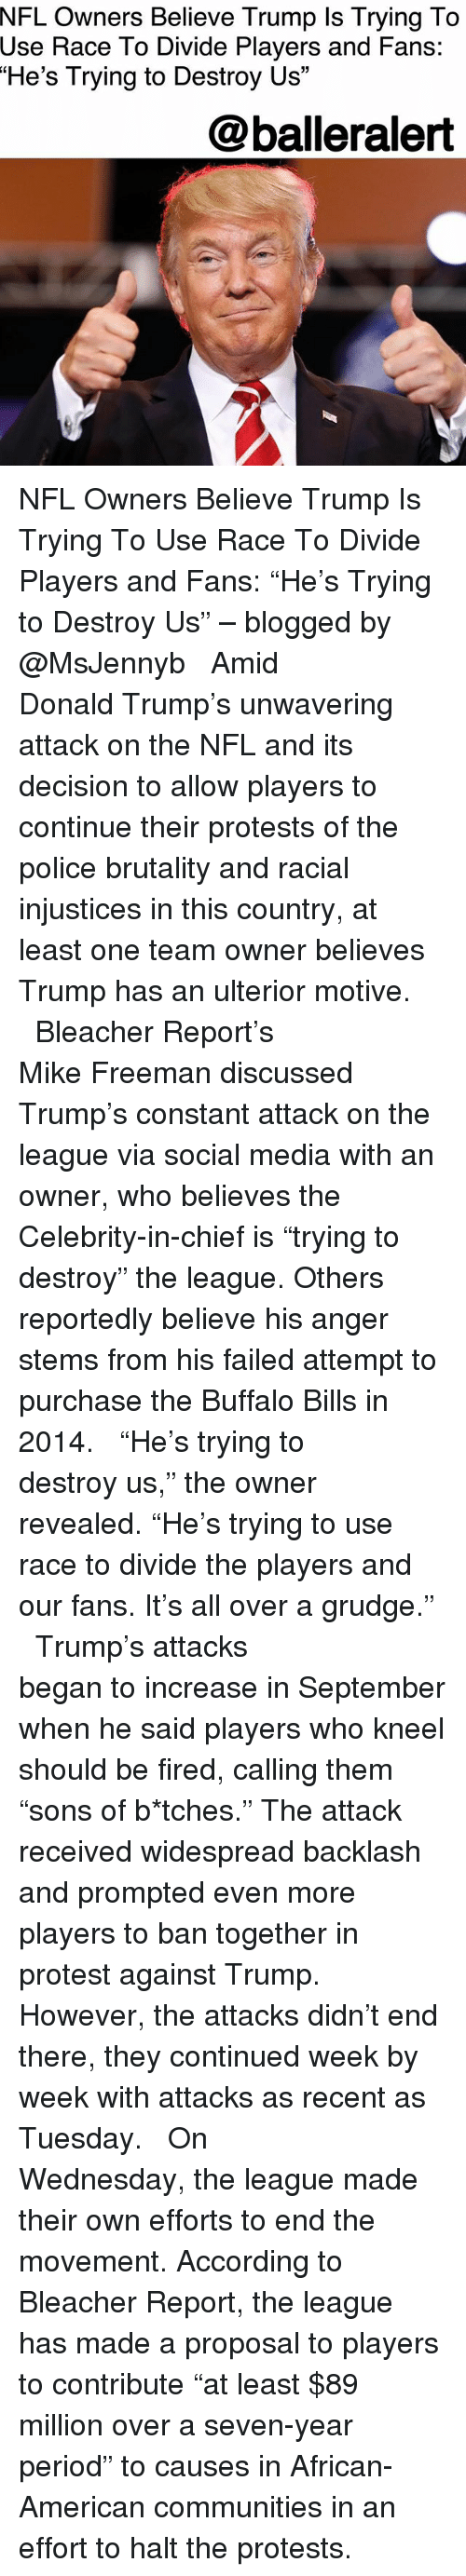 """Buffalo Bills: NFL Owners Believe Trump Is Trying To  Use  Race To Divide Players and Fans:  """"He's Trying to Destroy Us""""  @balleralert NFL Owners Believe Trump Is Trying To Use Race To Divide Players and Fans: """"He's Trying to Destroy Us"""" – blogged by @MsJennyb ⠀⠀⠀⠀⠀⠀⠀ ⠀⠀⠀⠀⠀⠀⠀ Amid Donald Trump's unwavering attack on the NFL and its decision to allow players to continue their protests of the police brutality and racial injustices in this country, at least one team owner believes Trump has an ulterior motive. ⠀⠀⠀⠀⠀⠀⠀ ⠀⠀⠀⠀⠀⠀⠀ Bleacher Report's Mike Freeman discussed Trump's constant attack on the league via social media with an owner, who believes the Celebrity-in-chief is """"trying to destroy"""" the league. Others reportedly believe his anger stems from his failed attempt to purchase the Buffalo Bills in 2014. ⠀⠀⠀⠀⠀⠀⠀ ⠀⠀⠀⠀⠀⠀⠀ """"He's trying to destroy us,"""" the owner revealed. """"He's trying to use race to divide the players and our fans. It's all over a grudge."""" ⠀⠀⠀⠀⠀⠀⠀ ⠀⠀⠀⠀⠀⠀⠀ Trump's attacks began to increase in September when he said players who kneel should be fired, calling them """"sons of b*tches."""" The attack received widespread backlash and prompted even more players to ban together in protest against Trump. However, the attacks didn't end there, they continued week by week with attacks as recent as Tuesday. ⠀⠀⠀⠀⠀⠀⠀ ⠀⠀⠀⠀⠀⠀⠀ On Wednesday, the league made their own efforts to end the movement. According to Bleacher Report, the league has made a proposal to players to contribute """"at least $89 million over a seven-year period"""" to causes in African-American communities in an effort to halt the protests."""